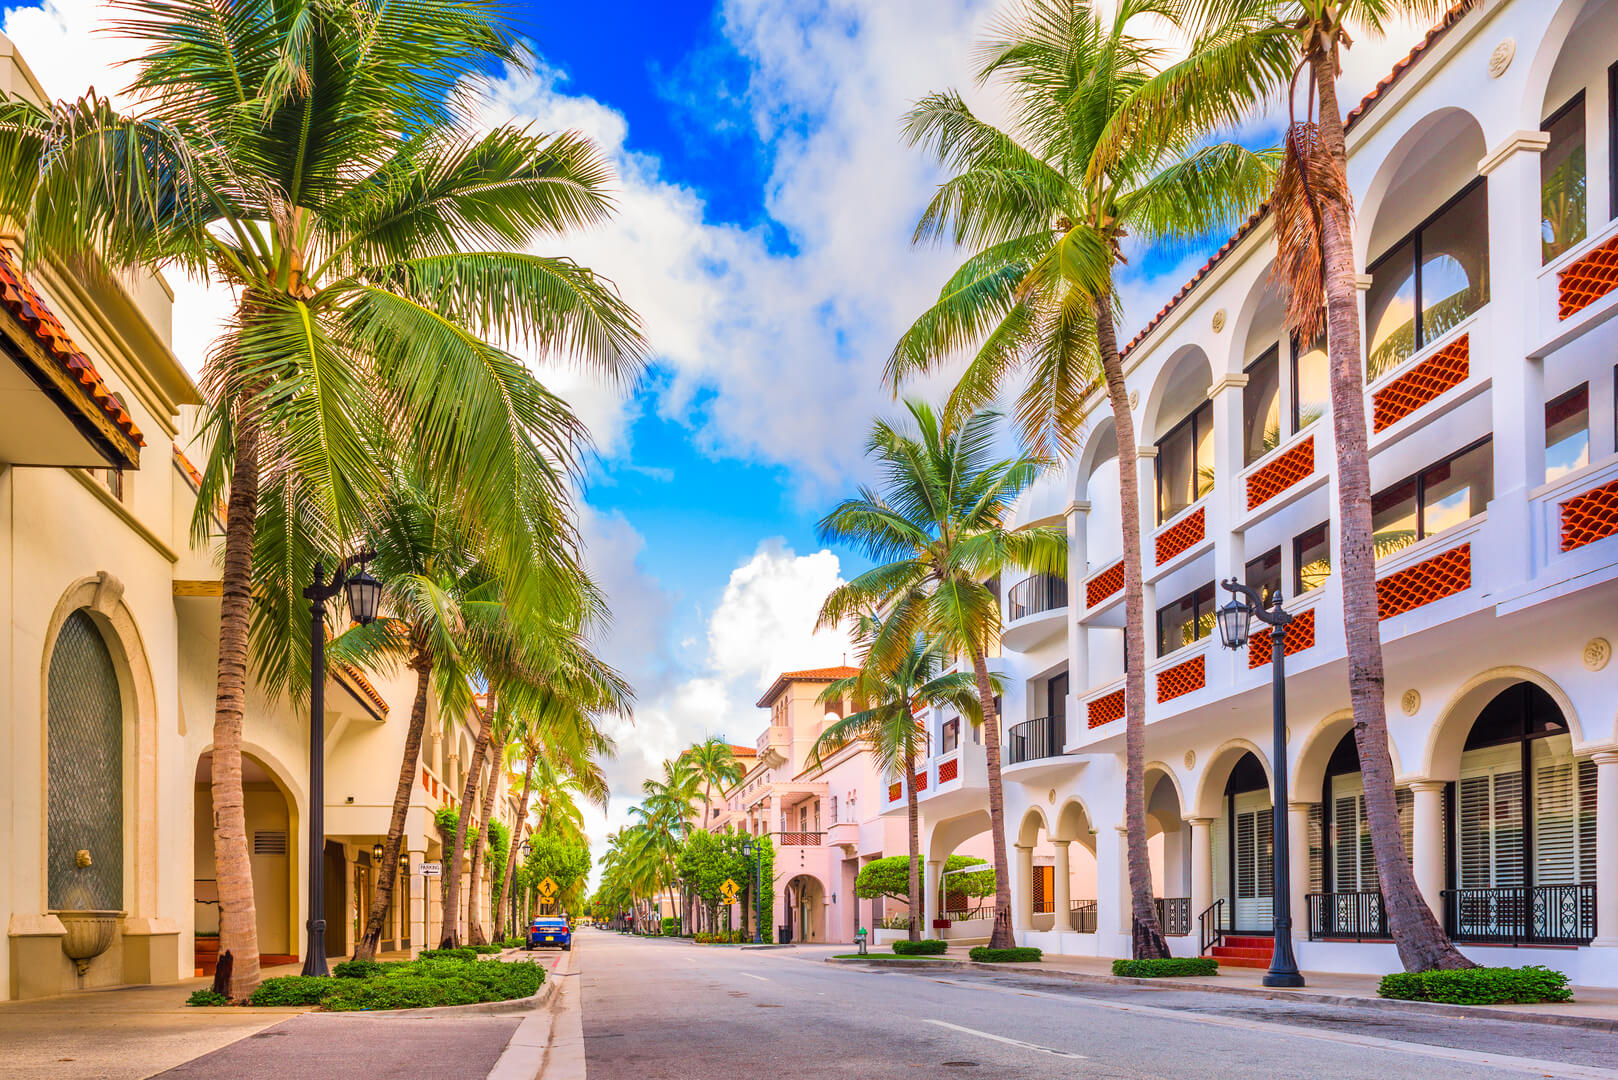 Palm Beach, Florida, USA to Worth Ave. Colorfull streets with palm